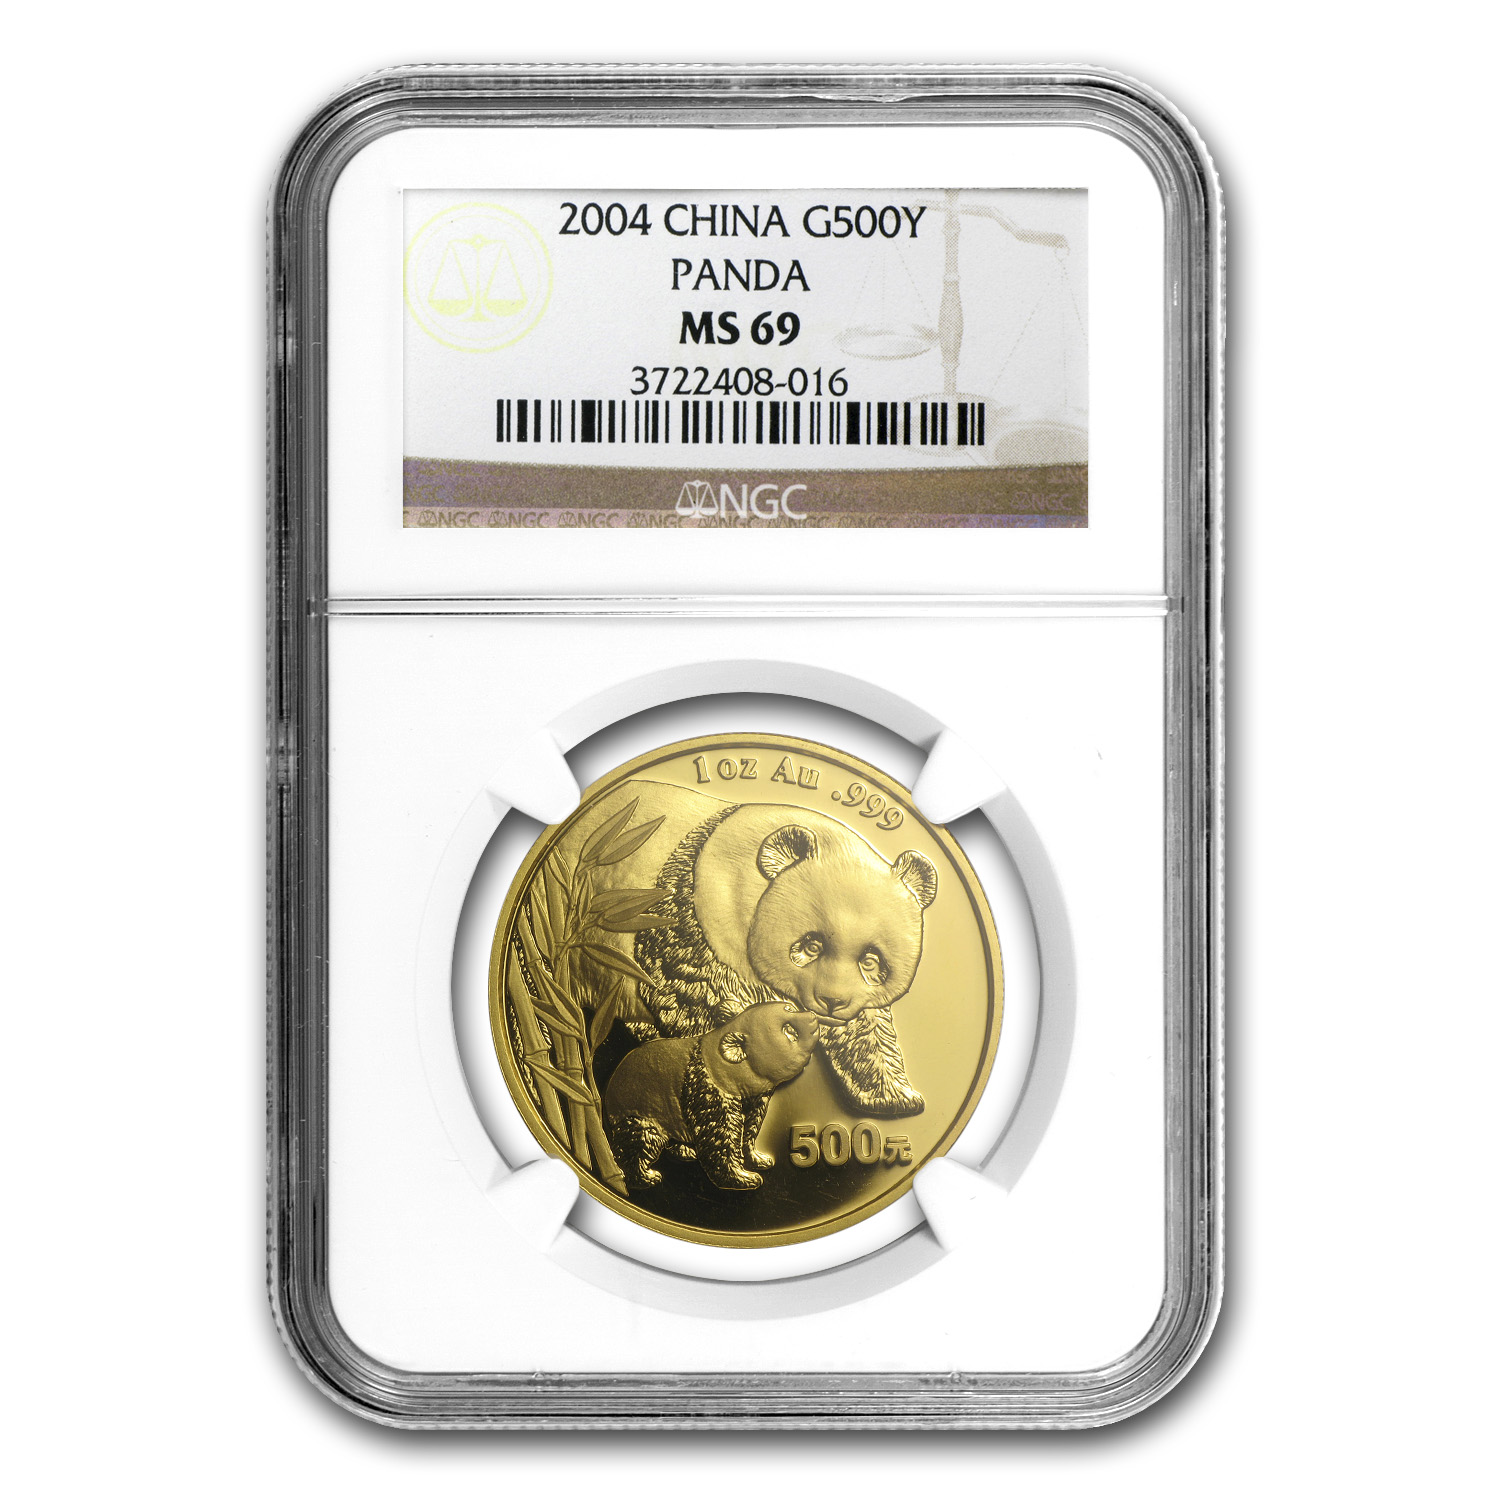 2004 China 1 oz Gold Panda MS-69 NGC